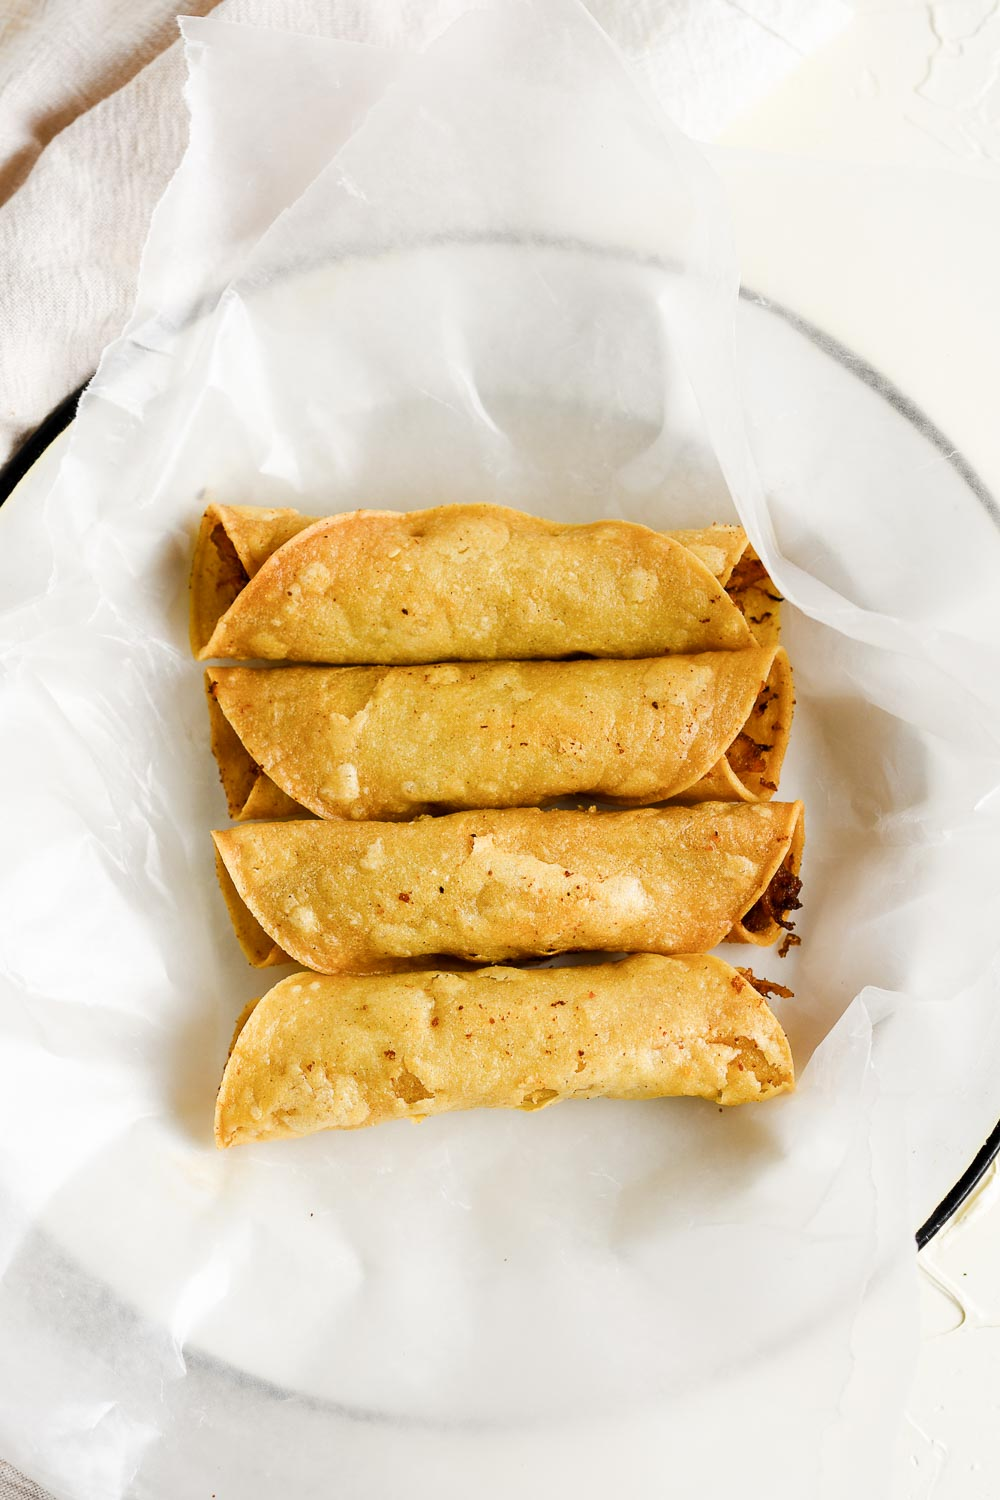 These chicken and potato taquitos are loaded with flavor and pack a bite so crisp. Super easy to make and always a hit. Try them now and enjoy with a glass of strawberry lychee soda!